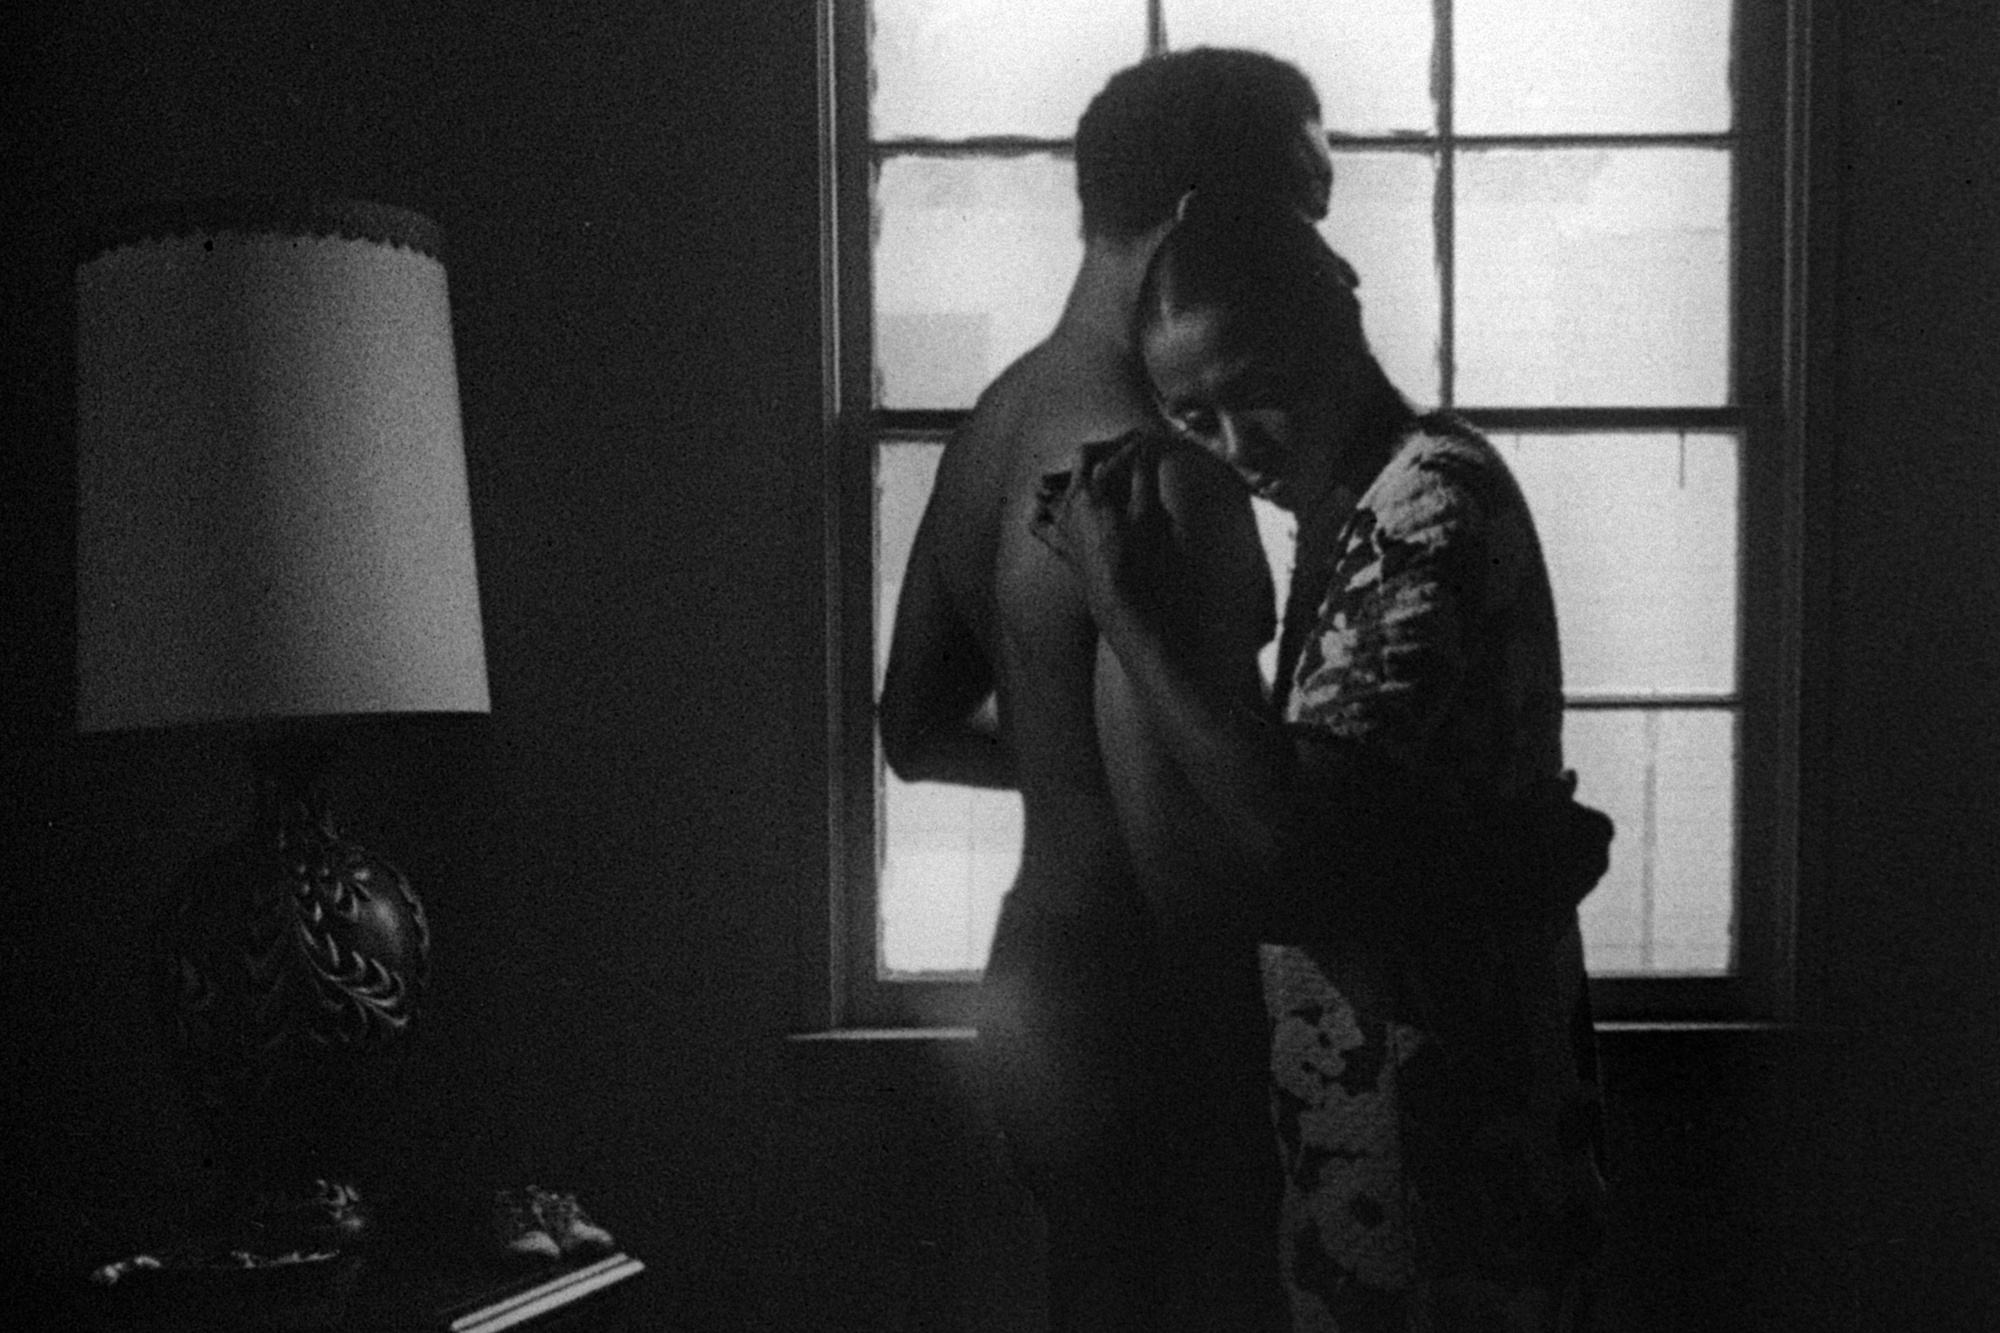 Killer of Sheep. 1977. USA. Directed by Charles Burnett. Courtesy of Milestone Films/Photofest. © Milestone Films